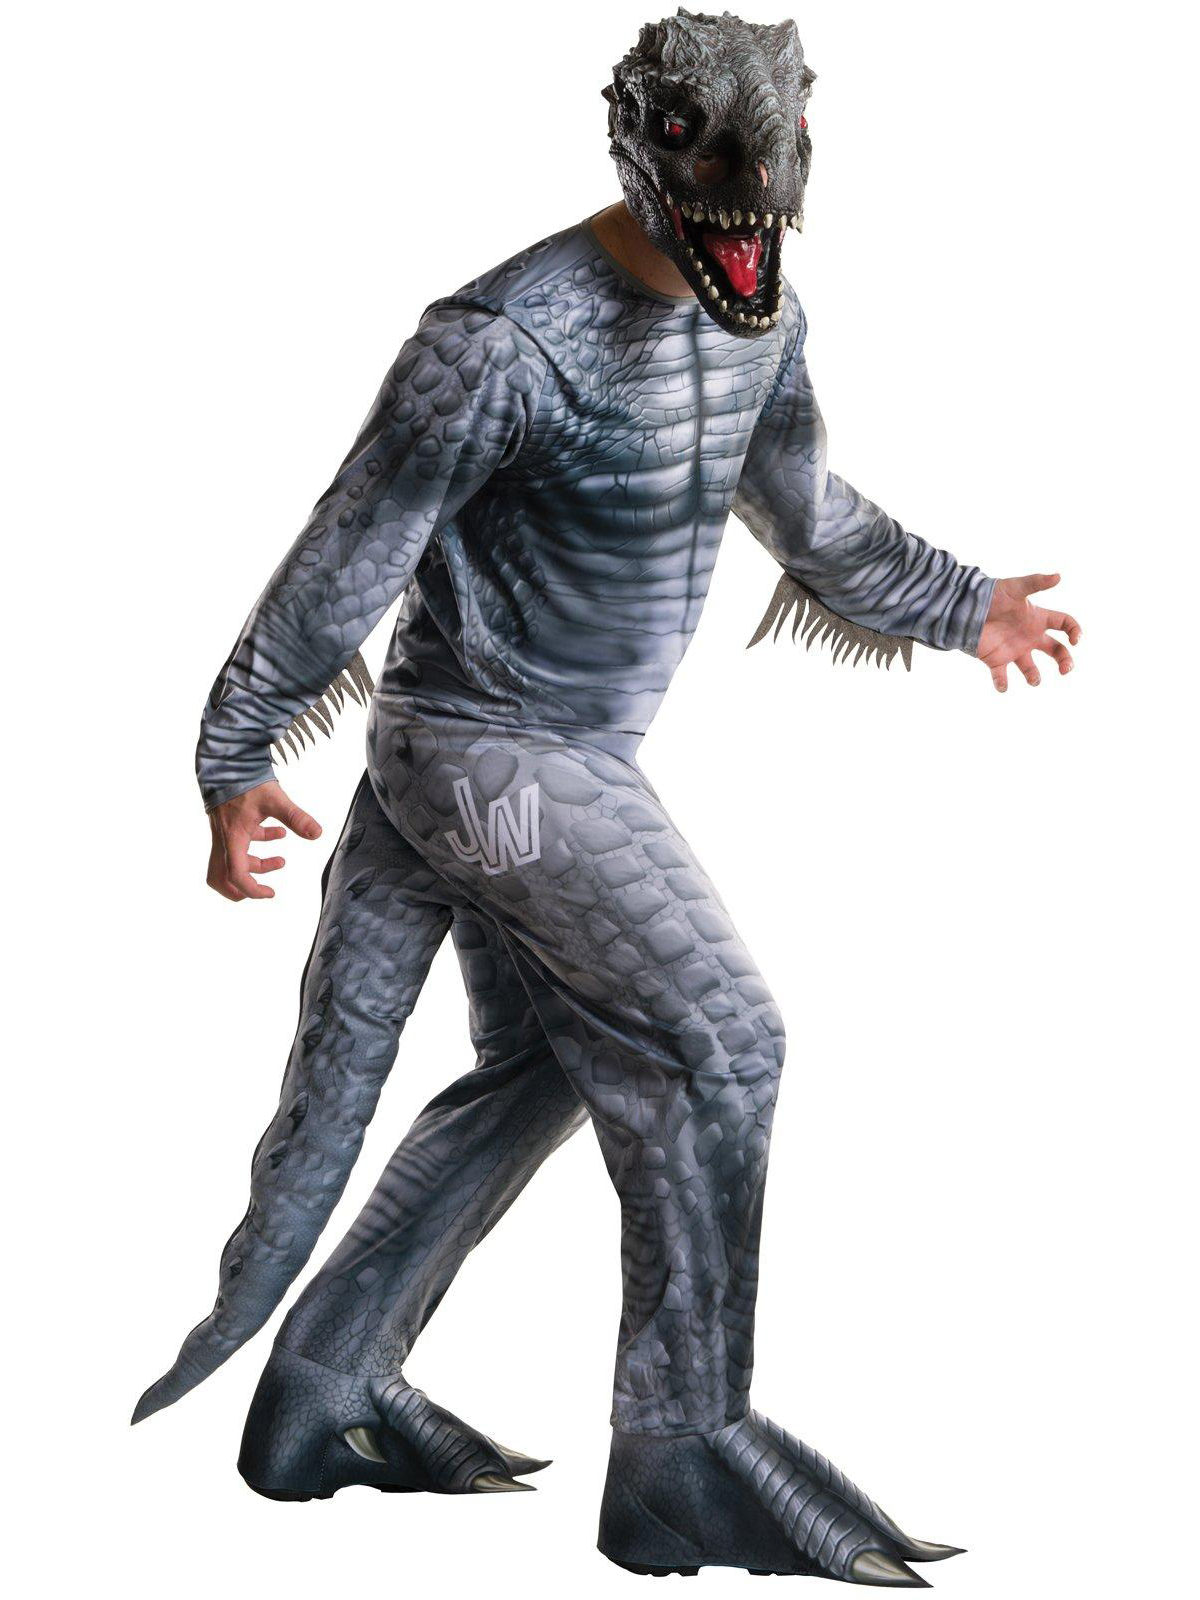 Jurassic World - Indominus Rex Costume For Adults R810904-STD